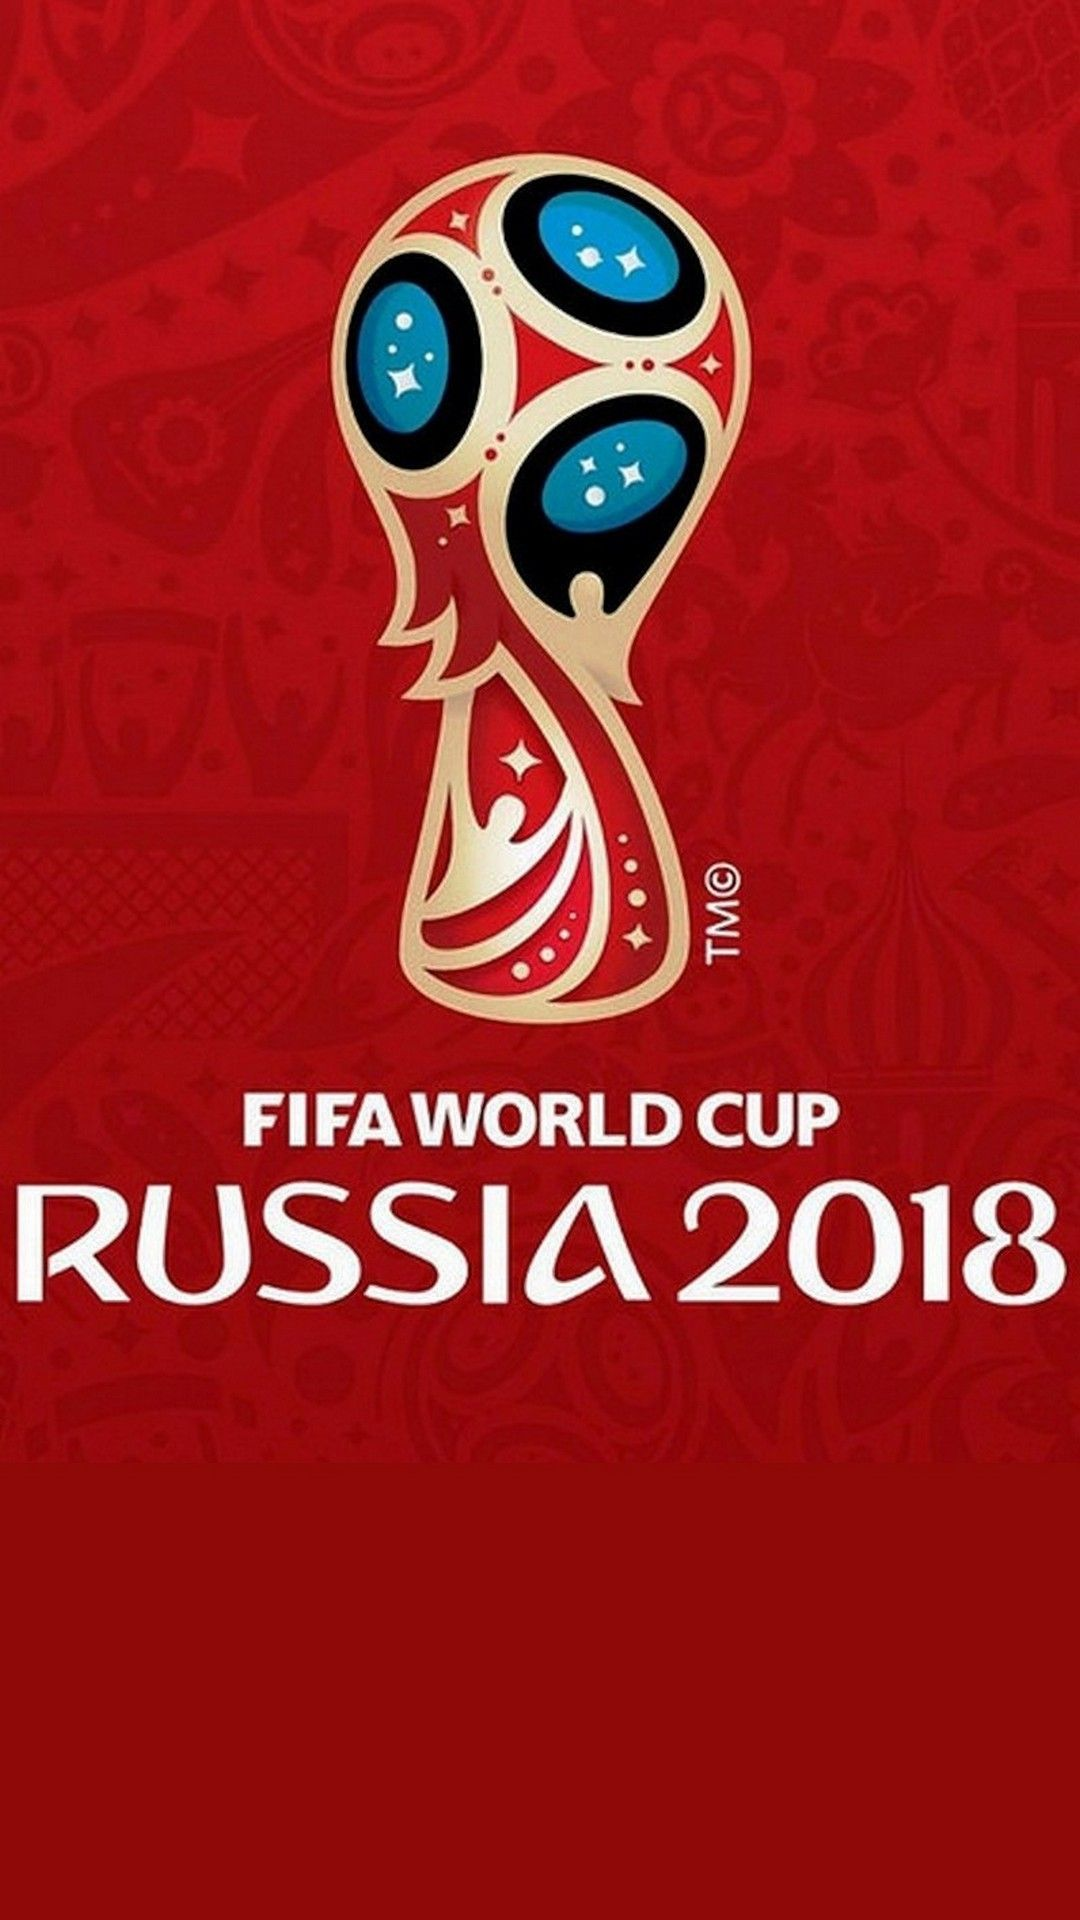 World Cup Wallpaper Android Best Android Wallpapers